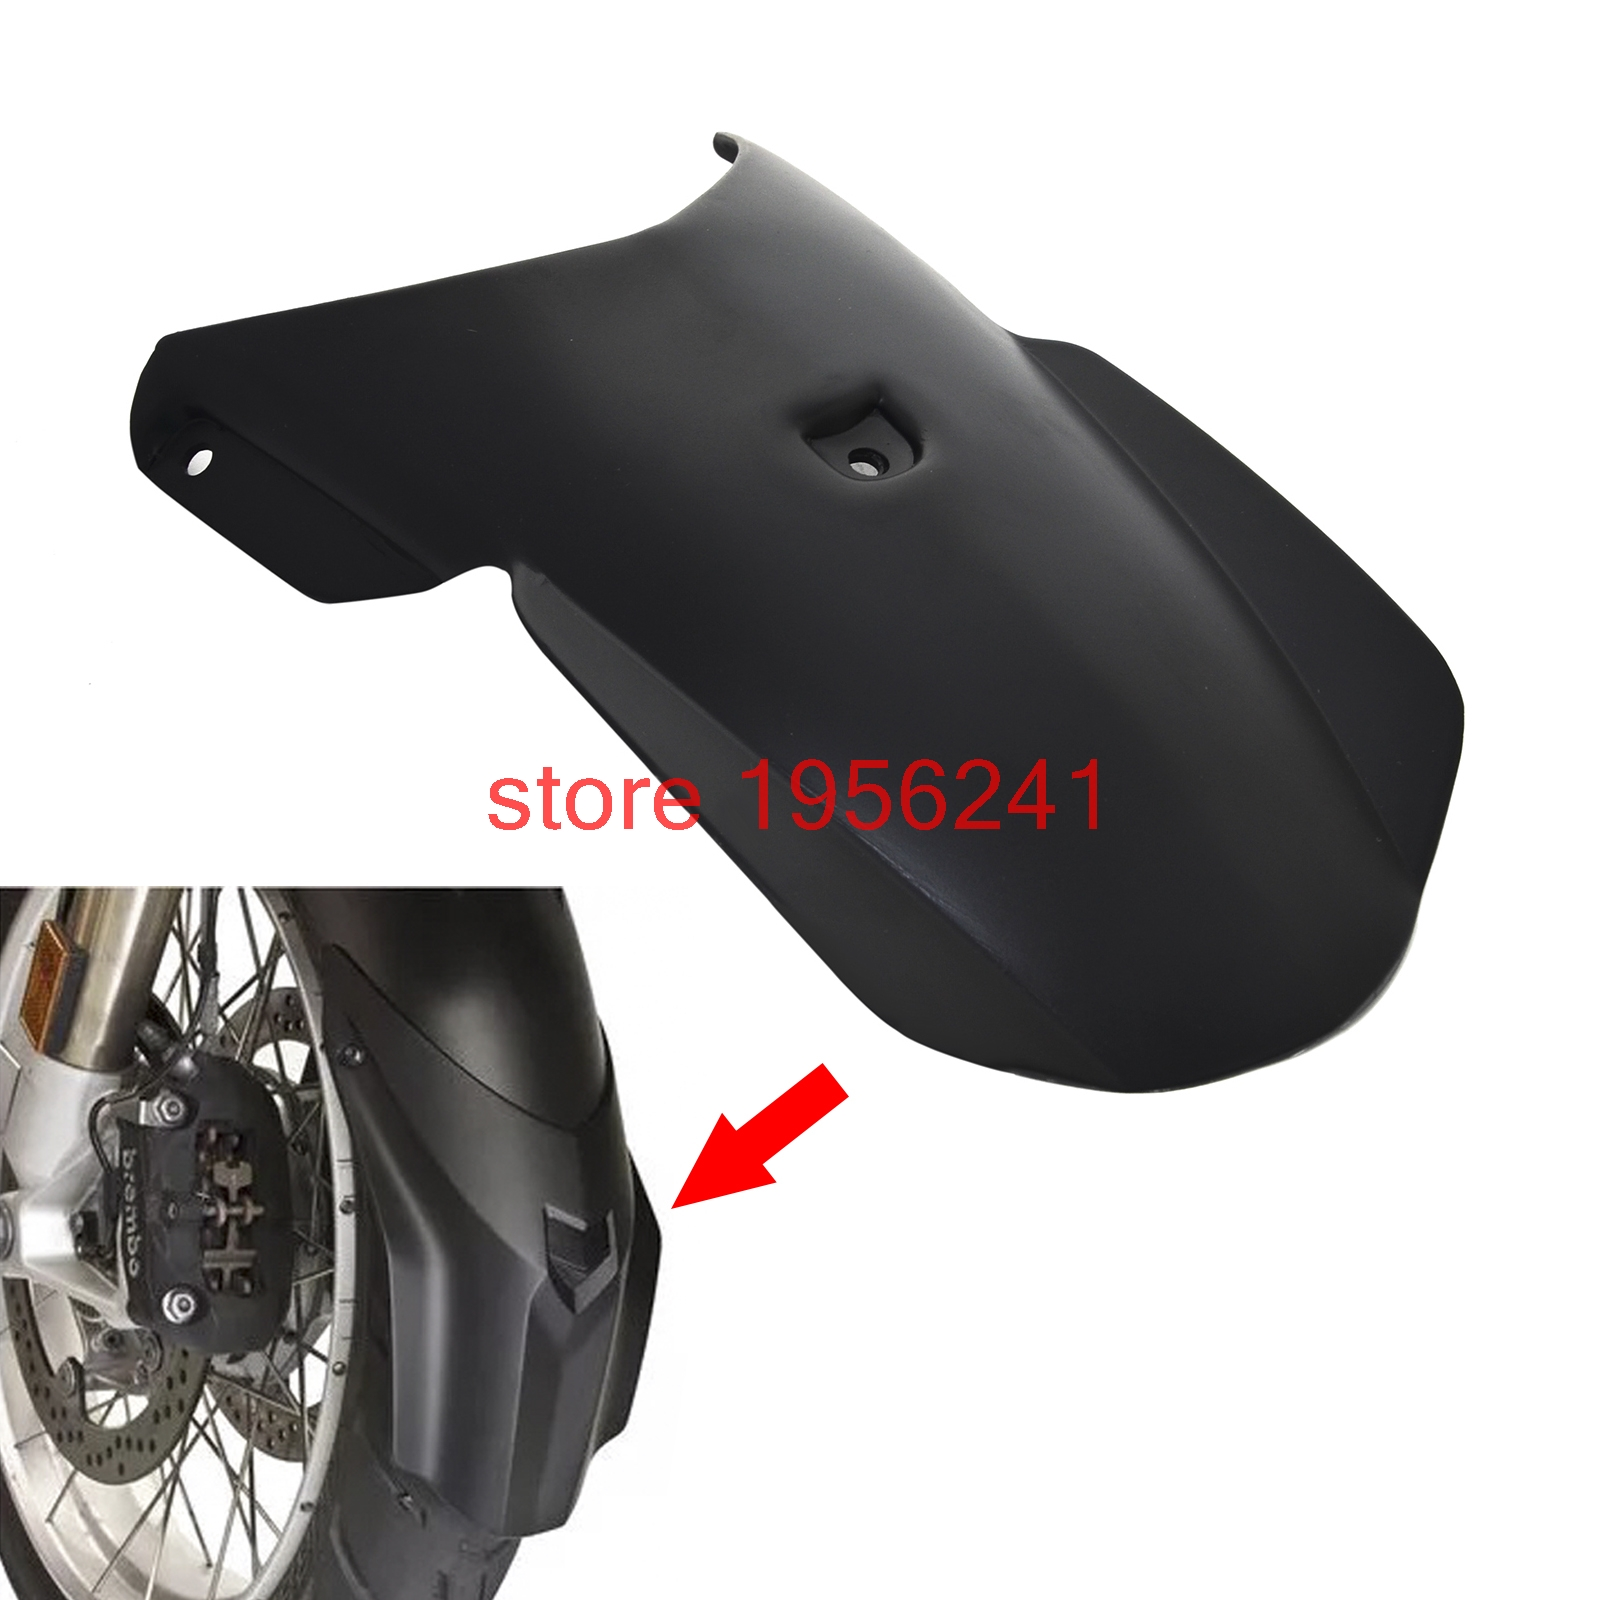 Motorcycle Front fender extension Extender for BMW F800GS F650GS 2008-2017 F800 GS Adventure 2013 2014 2015